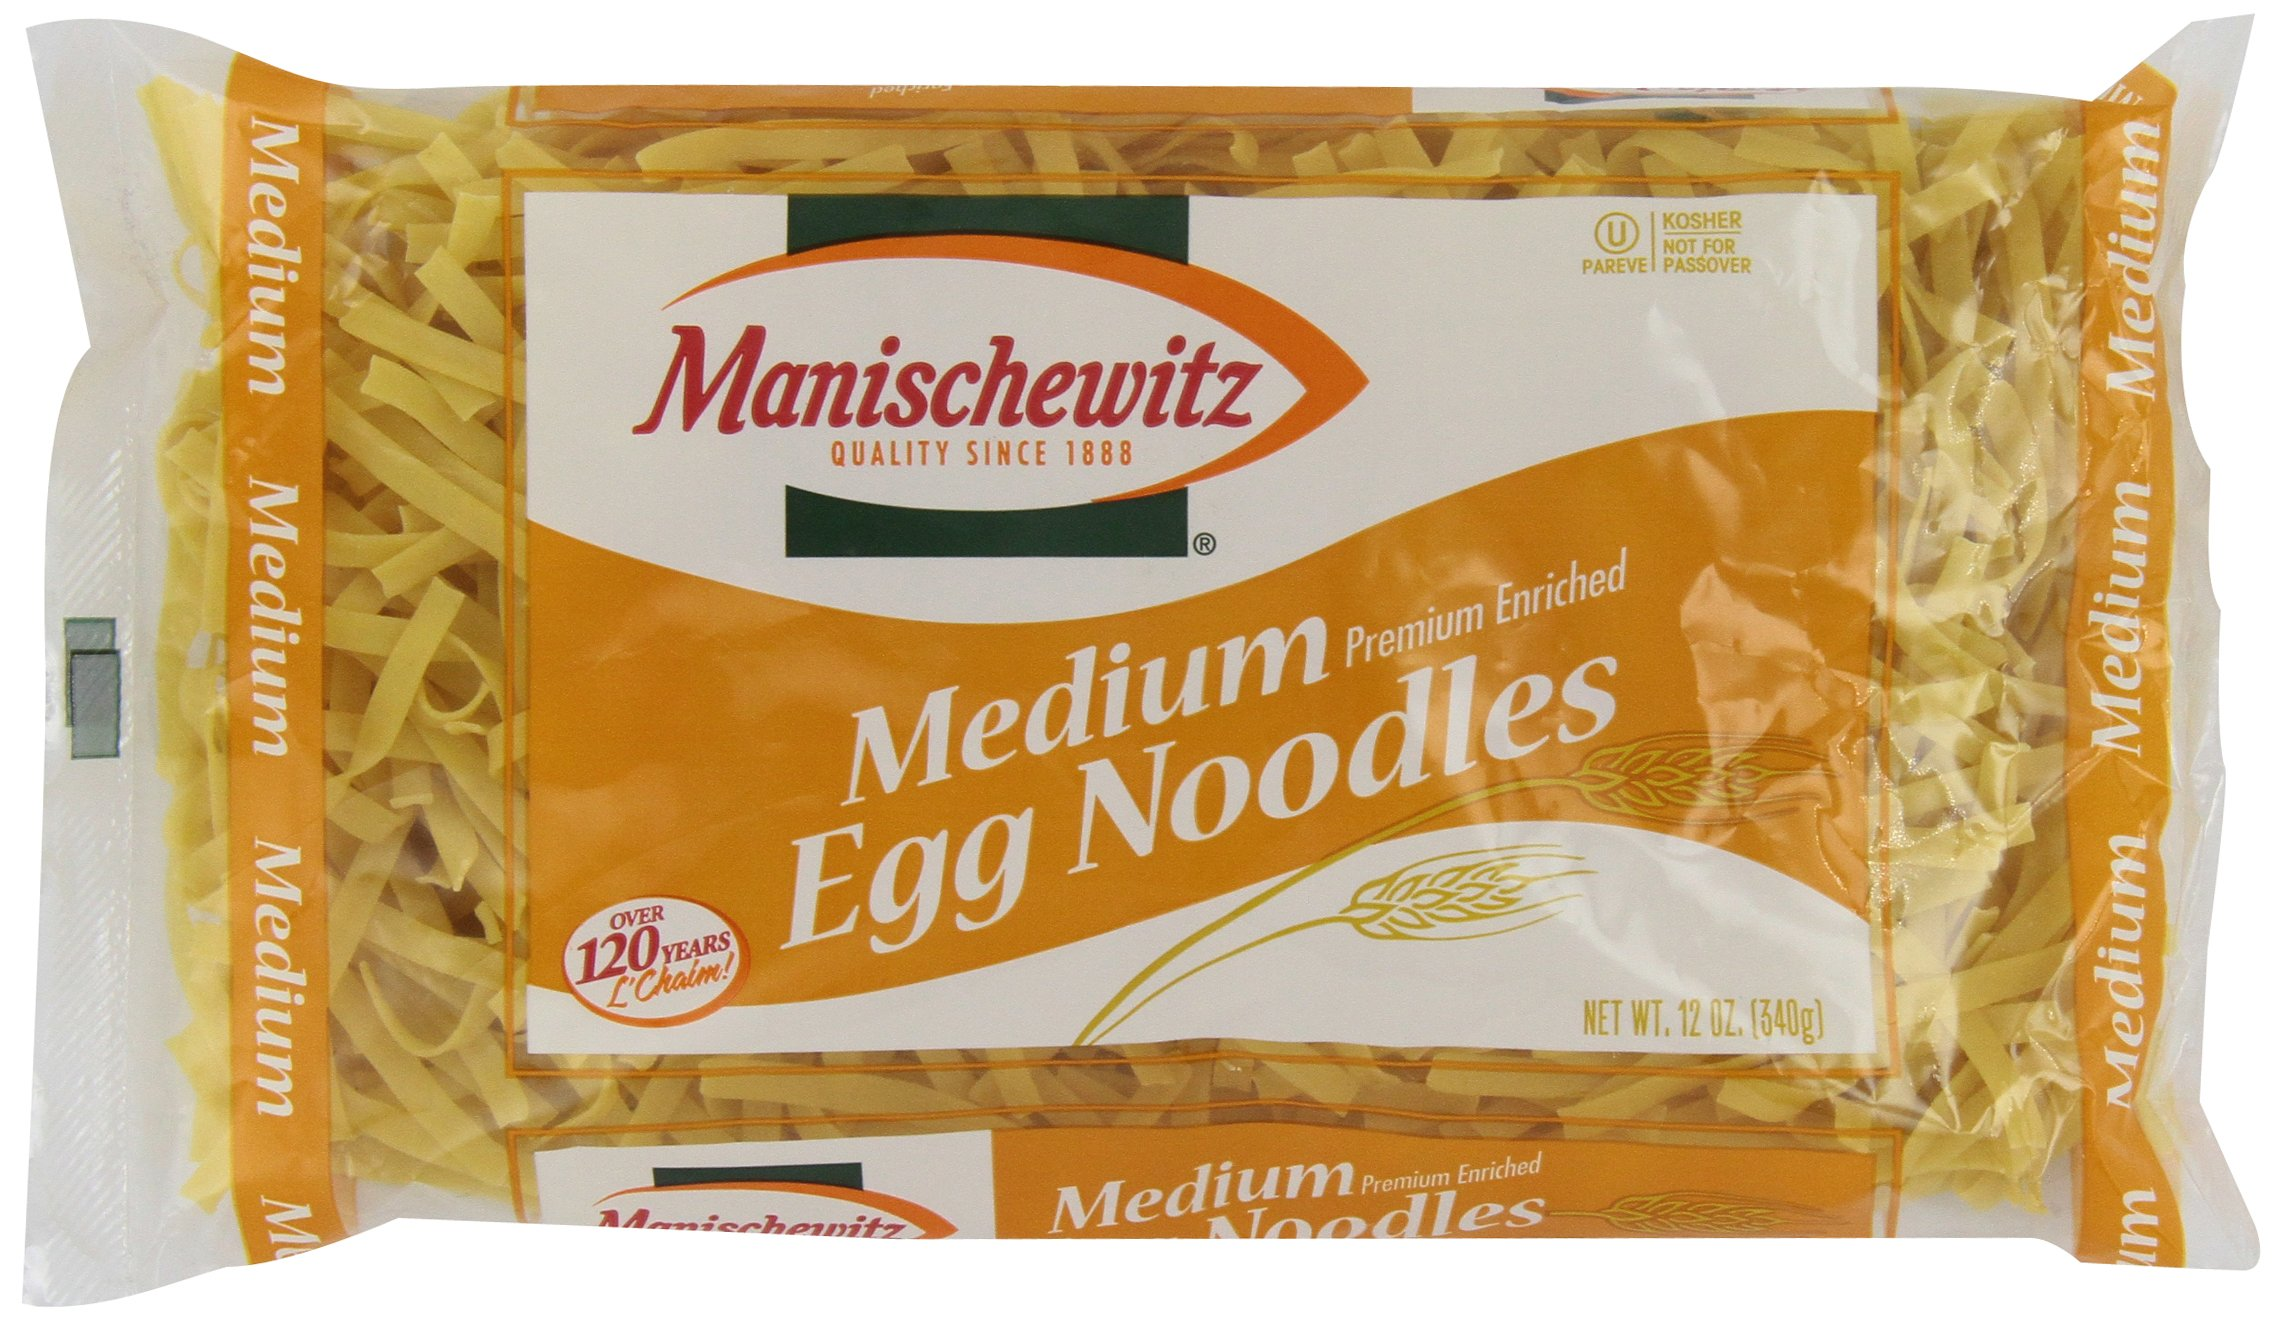 Manischewitz, Medium Noodles, 12 oz